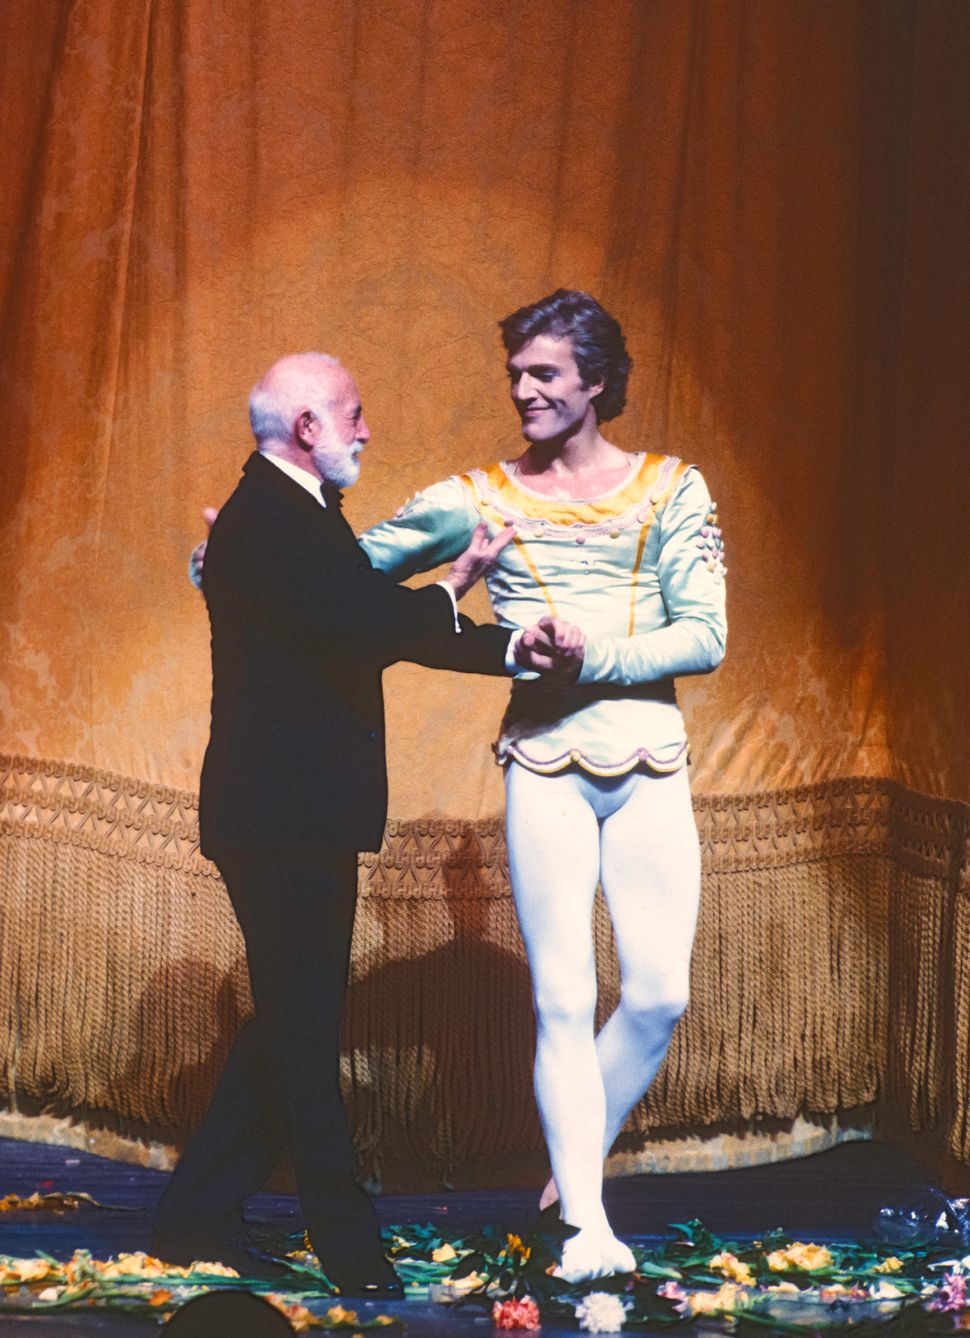 After his final performance with the New York City Ballet, Danish dancer Peter Martins (right) is greeted by American choreog